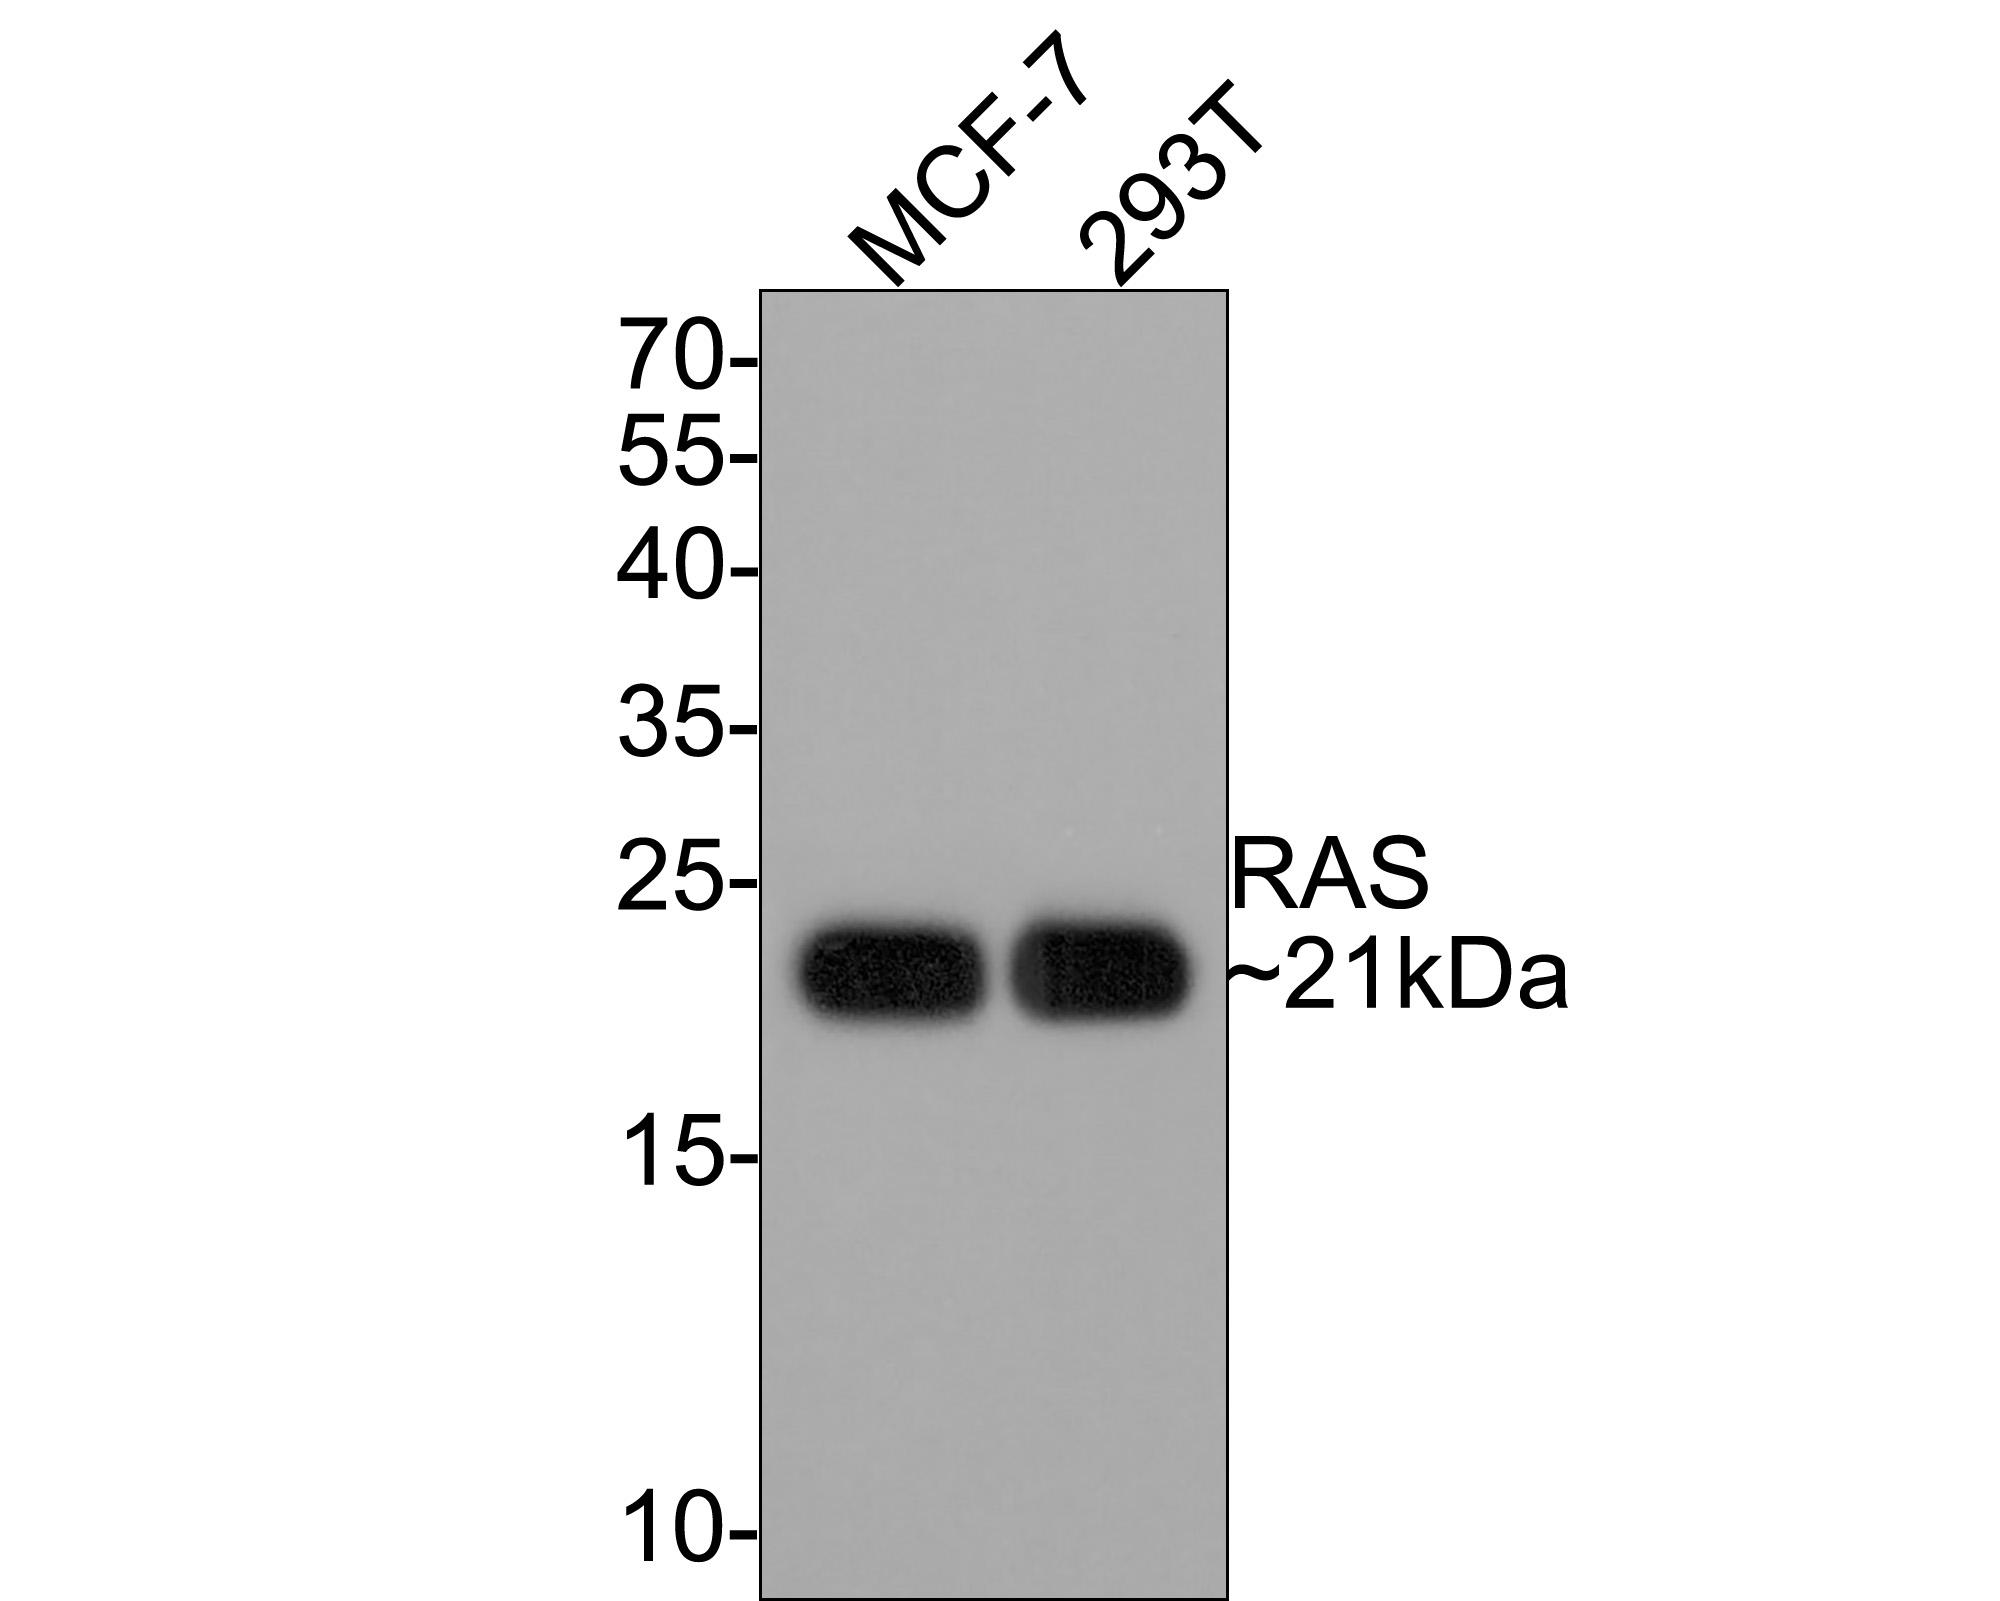 Western blot analysis of Ras on different lysates. Proteins were transferred to a PVDF membrane and blocked with 5% BSA in PBS for 1 hour at room temperature. The primary antibody (ET1601-16, 1/500) was used in 5% BSA at room temperature for 2 hours. Goat Anti-Rabbit IgG - HRP Secondary Antibody (HA1001) at 1:5,000 dilution was used for 1 hour at room temperature. Positive control:  Lane 1: MCF-7 cell lysate Lane 2: 293T cell lysate Lane 3: mouse brain tissue lysate